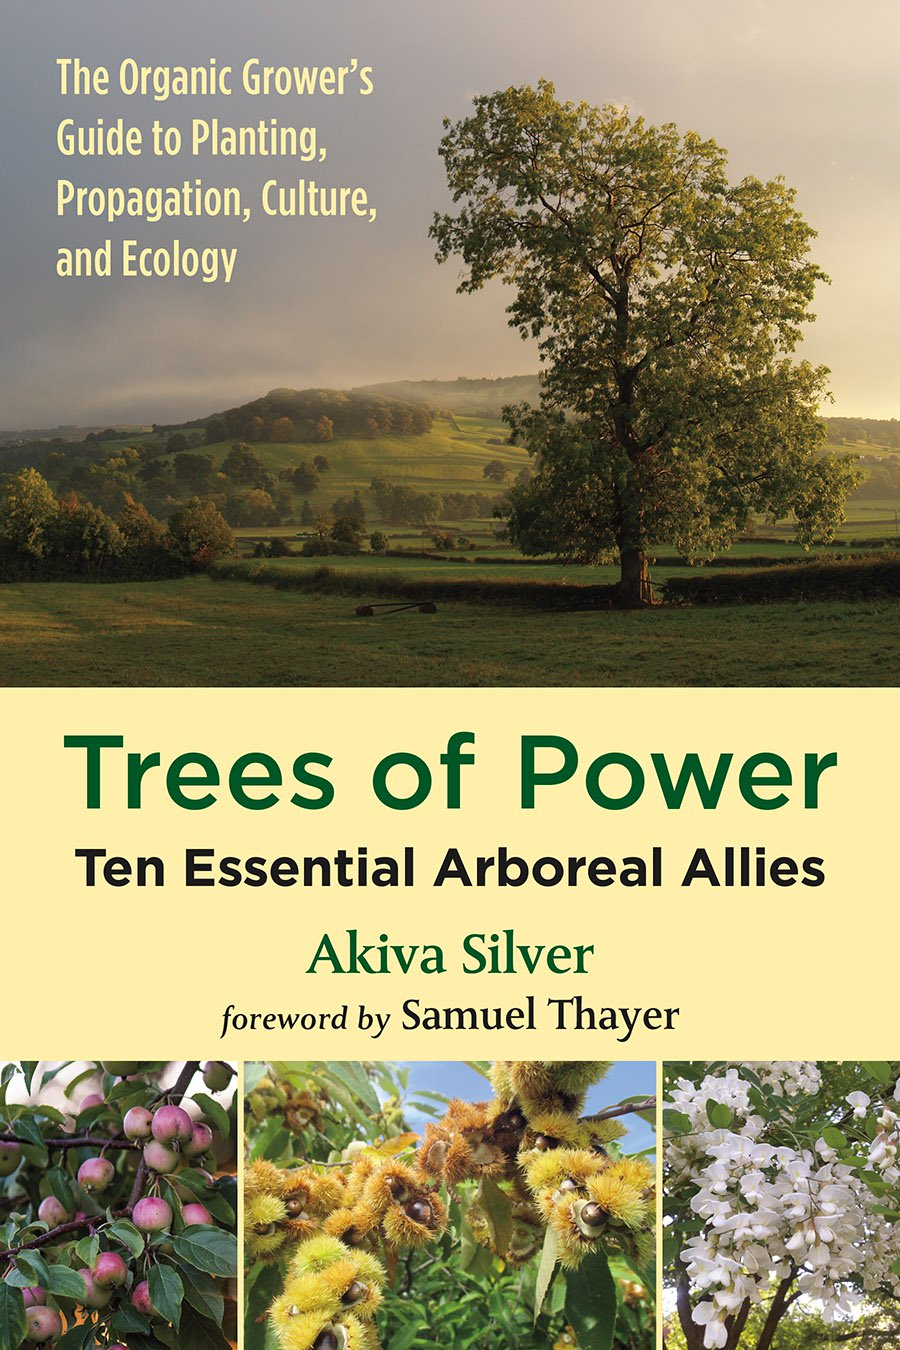 Trees of Power Review